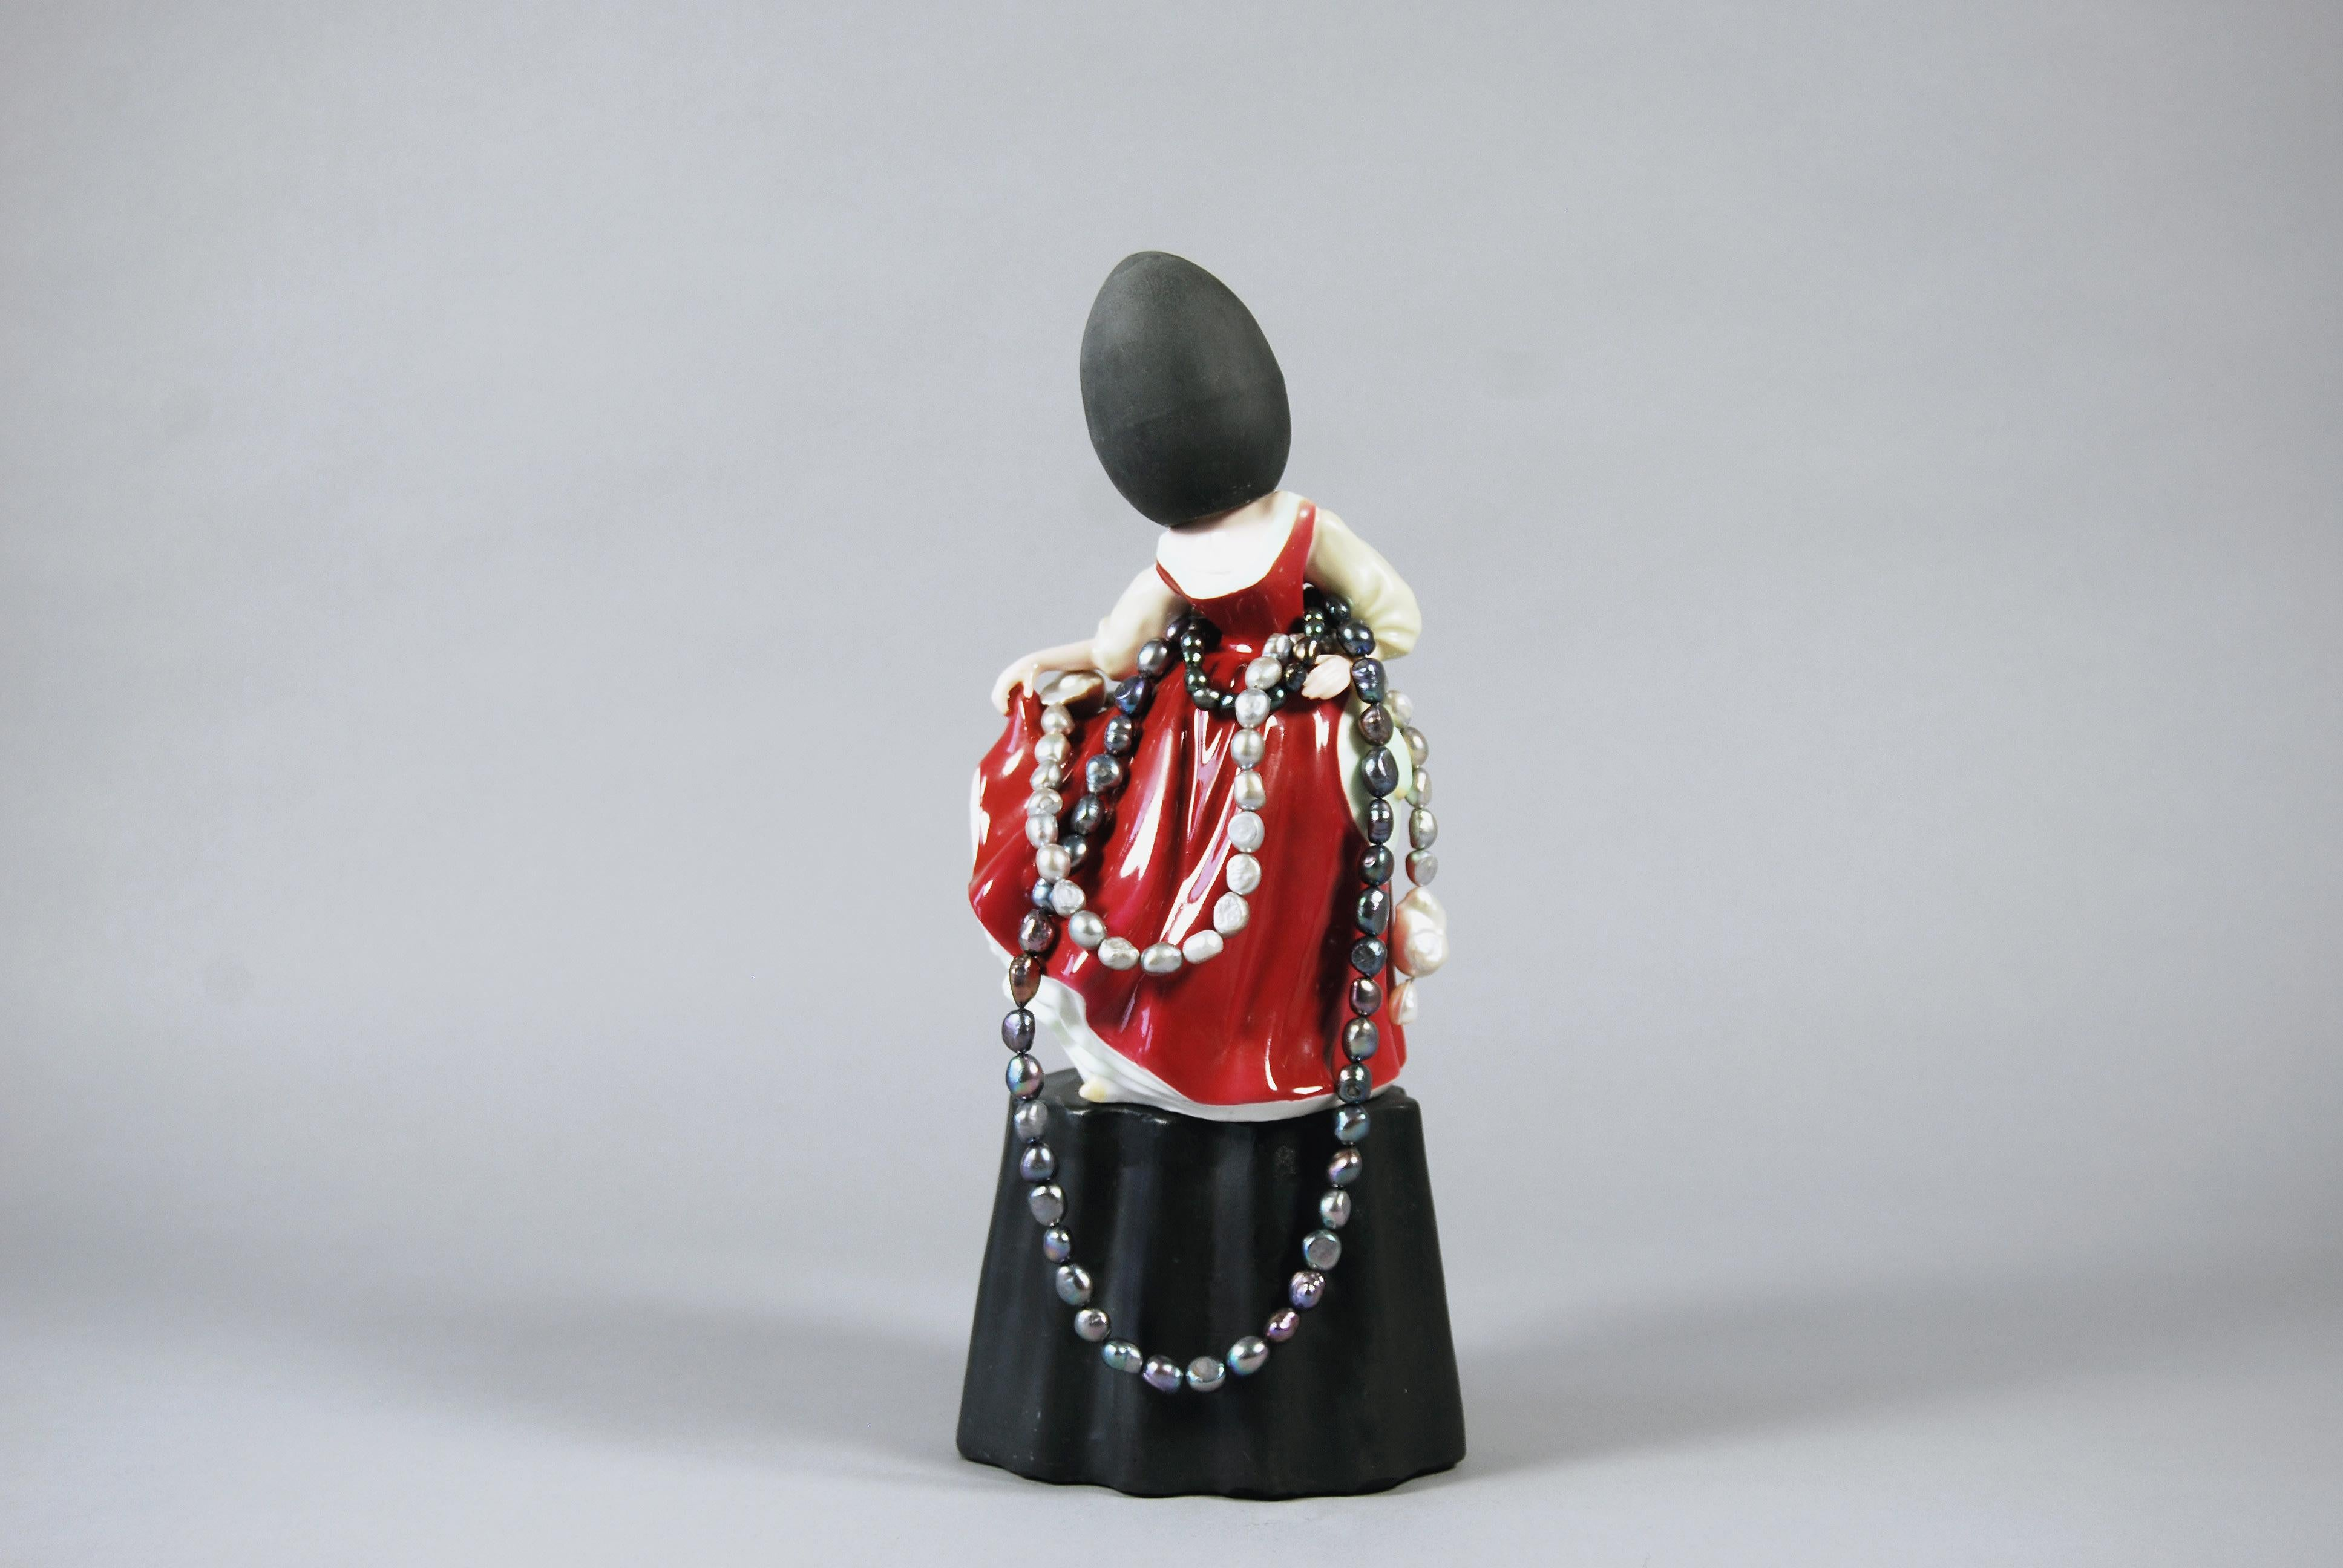 Matt Smith, Red Girl with Pearls, Black Parisian, Porcelain Freshwater Pearls